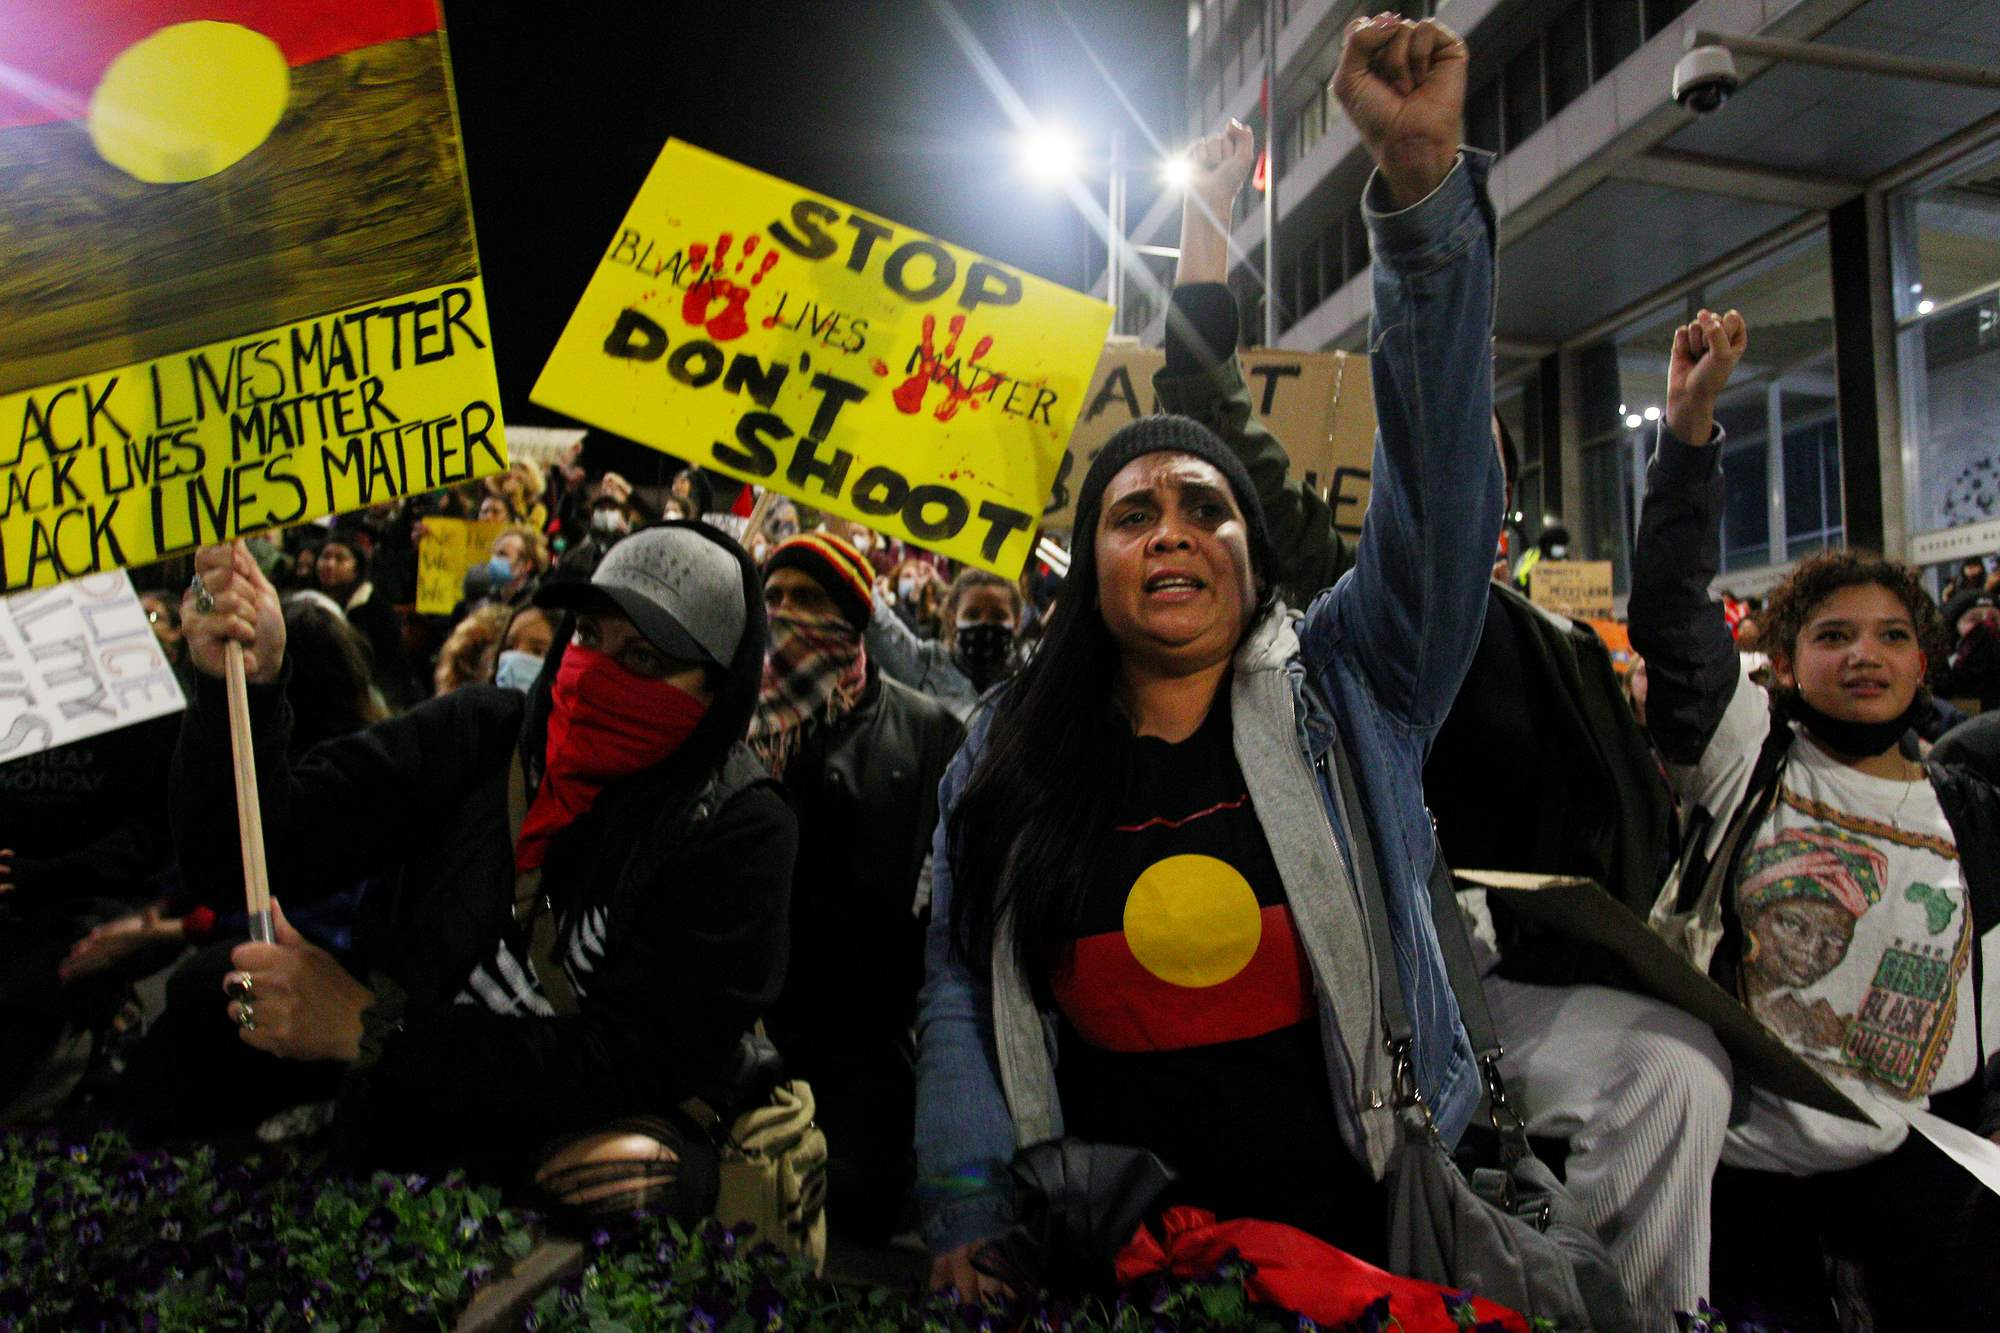 In a show of solidarity, protestors from around the world gathered to support the Black Lives Matter movement. Photo: Getty Images.